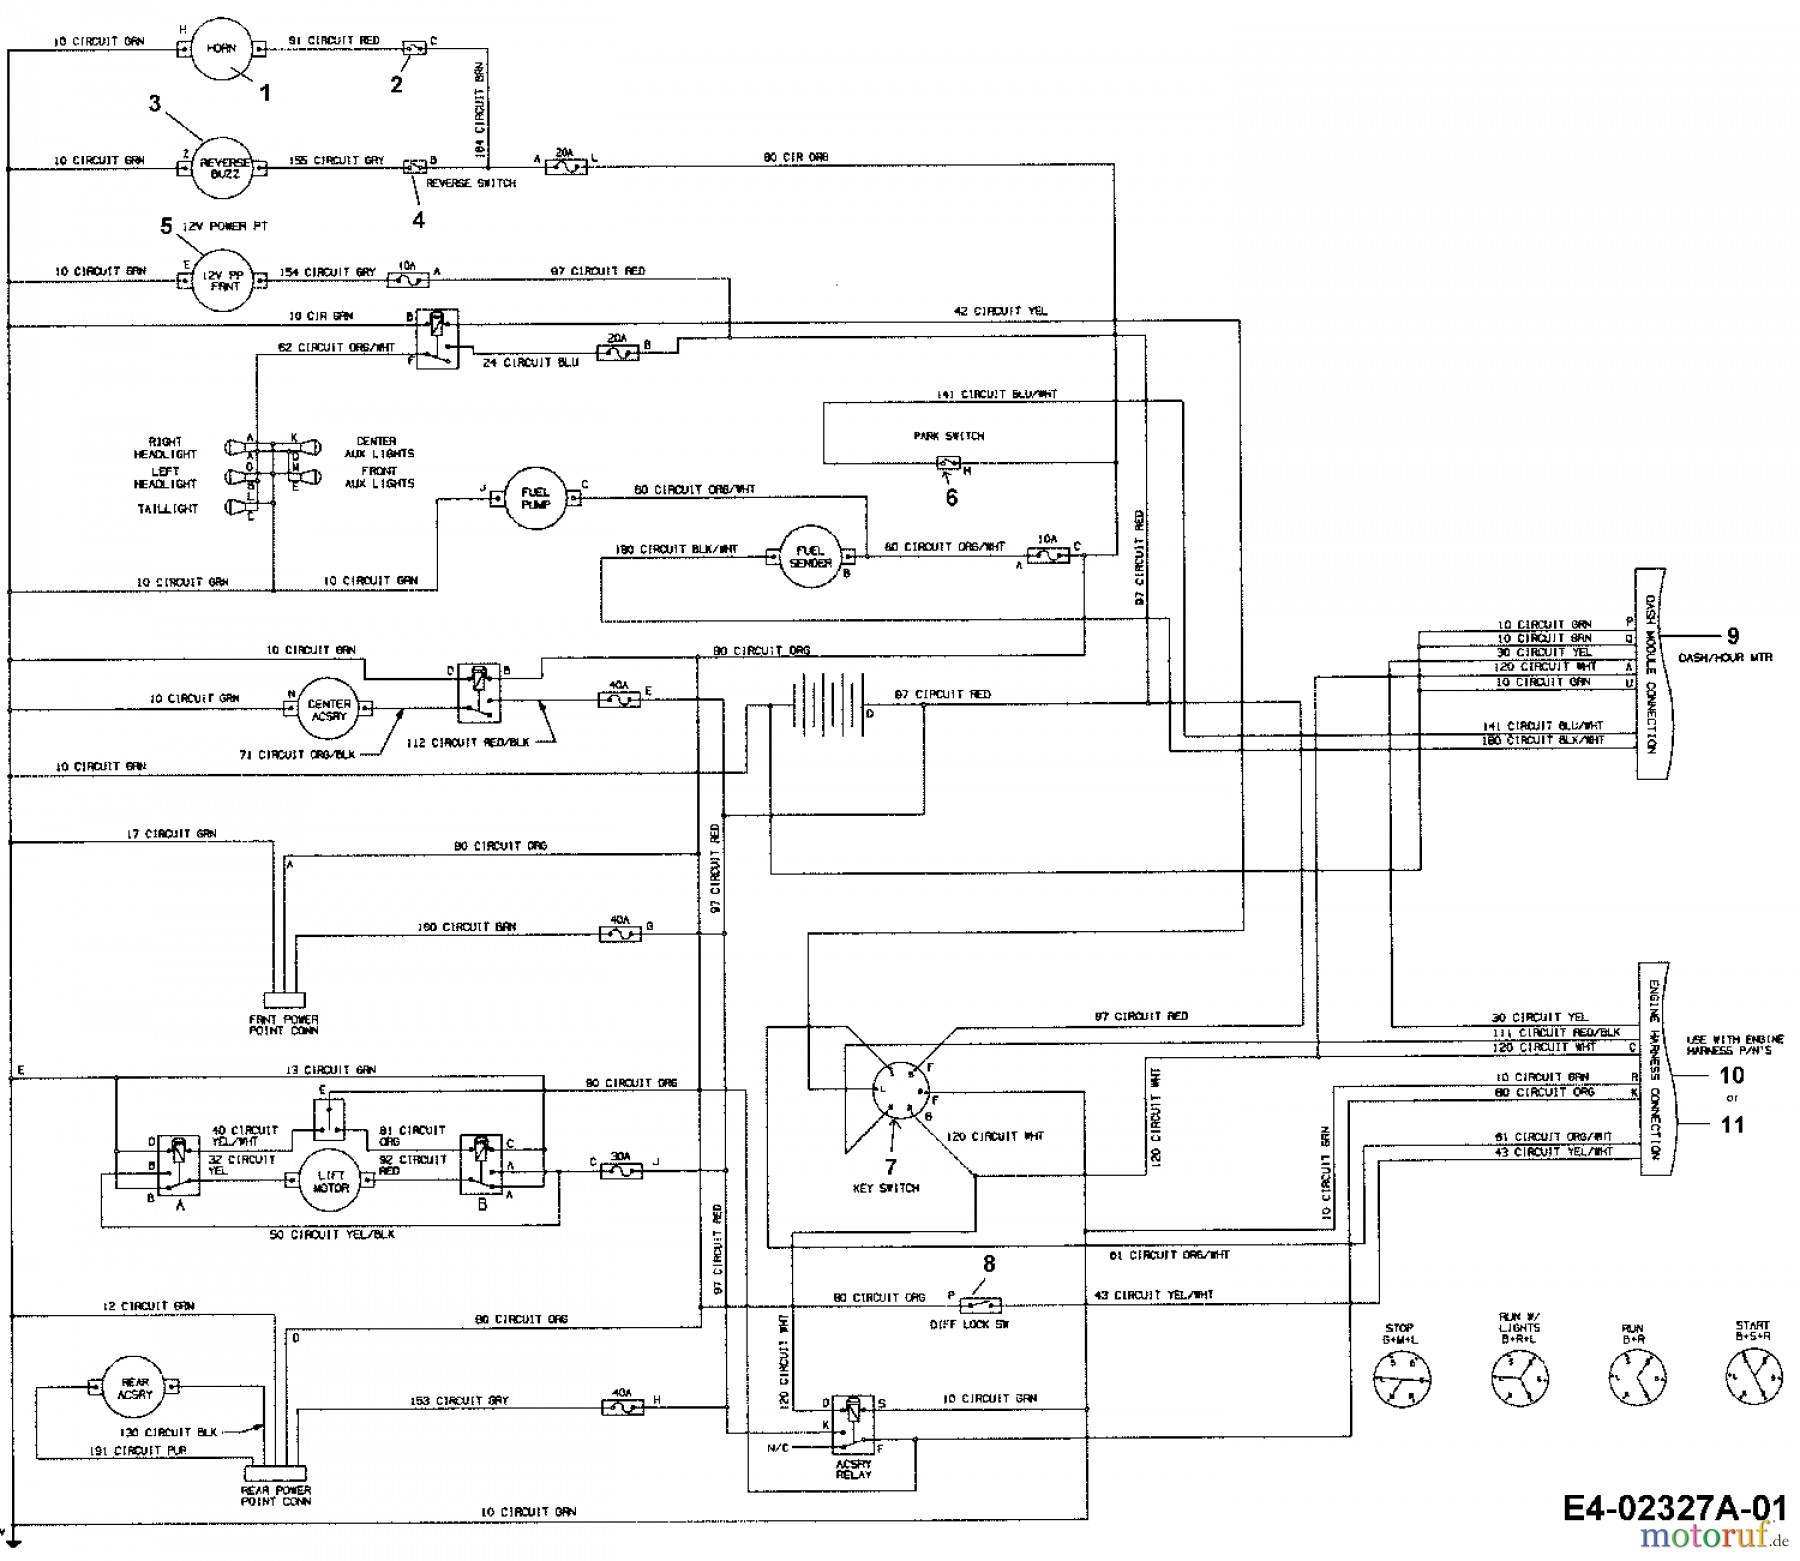 hight resolution of 2008 mtd rzt 50 wiring diagram wiring diagram blog 2008 mtd rzt 50 wiring diagram